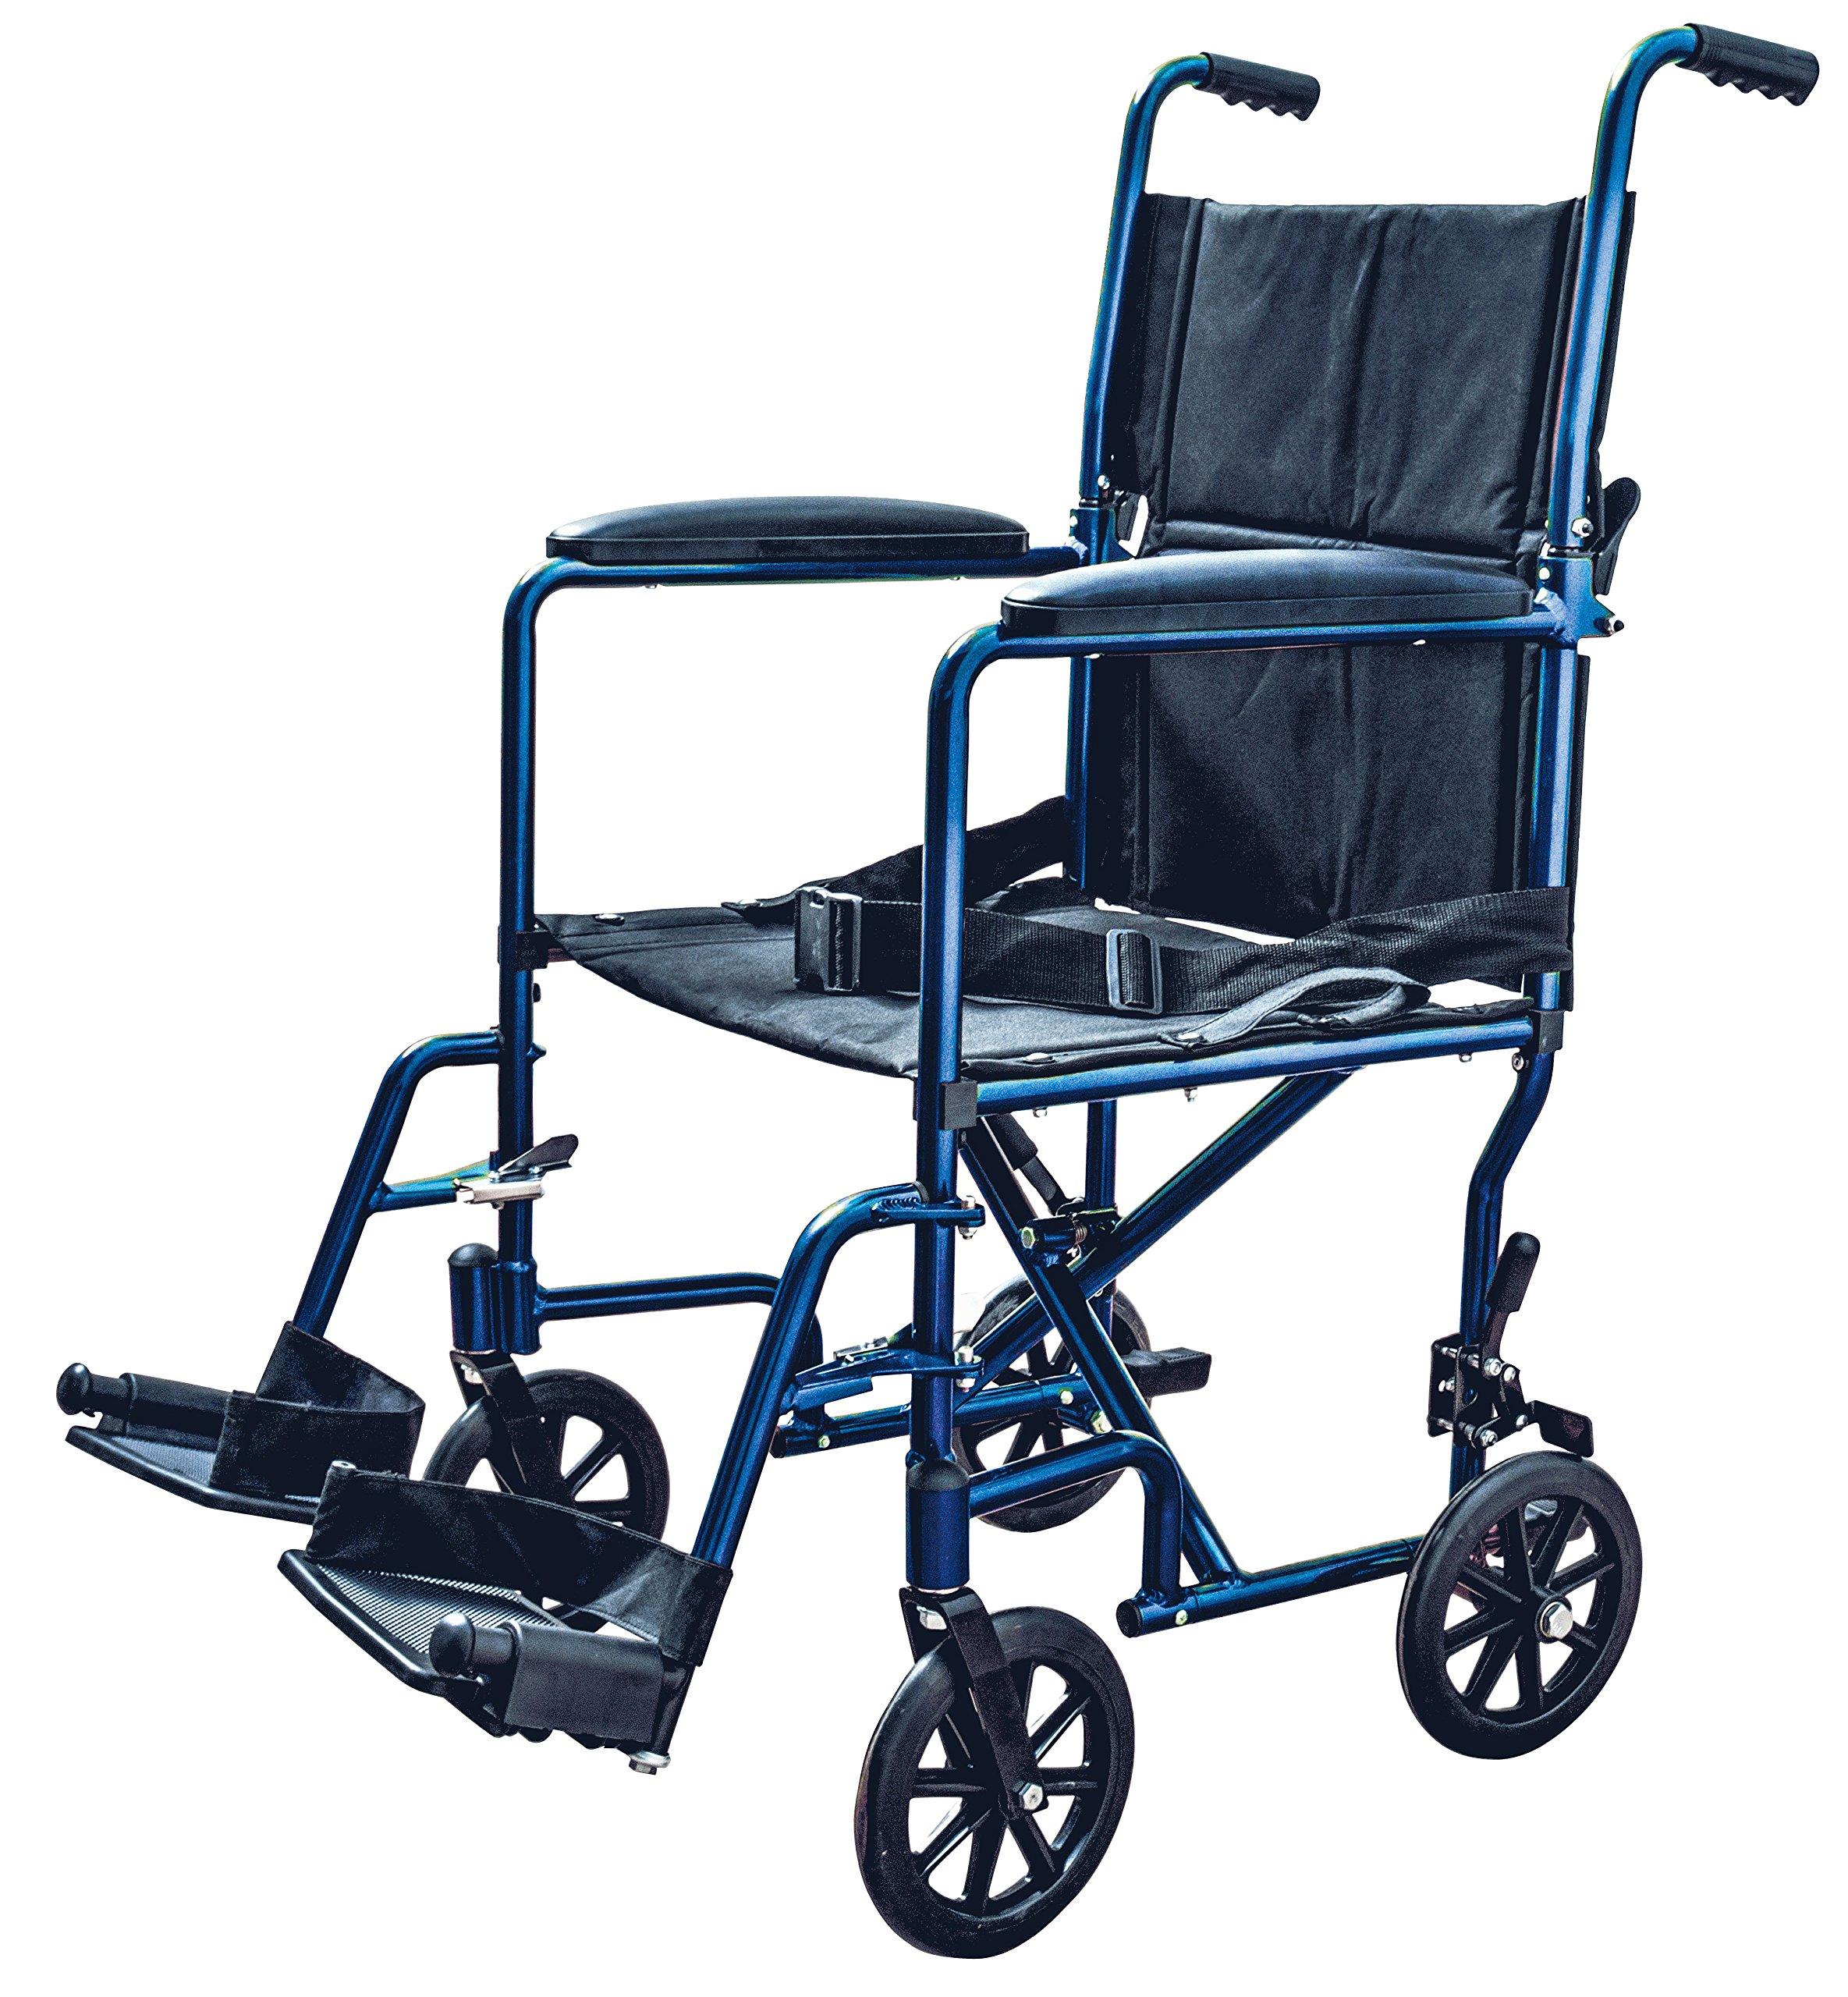 ZCH9201BL - Transport Chair with Swing Away Foot Rest 19 Width, Aluminum, Blue